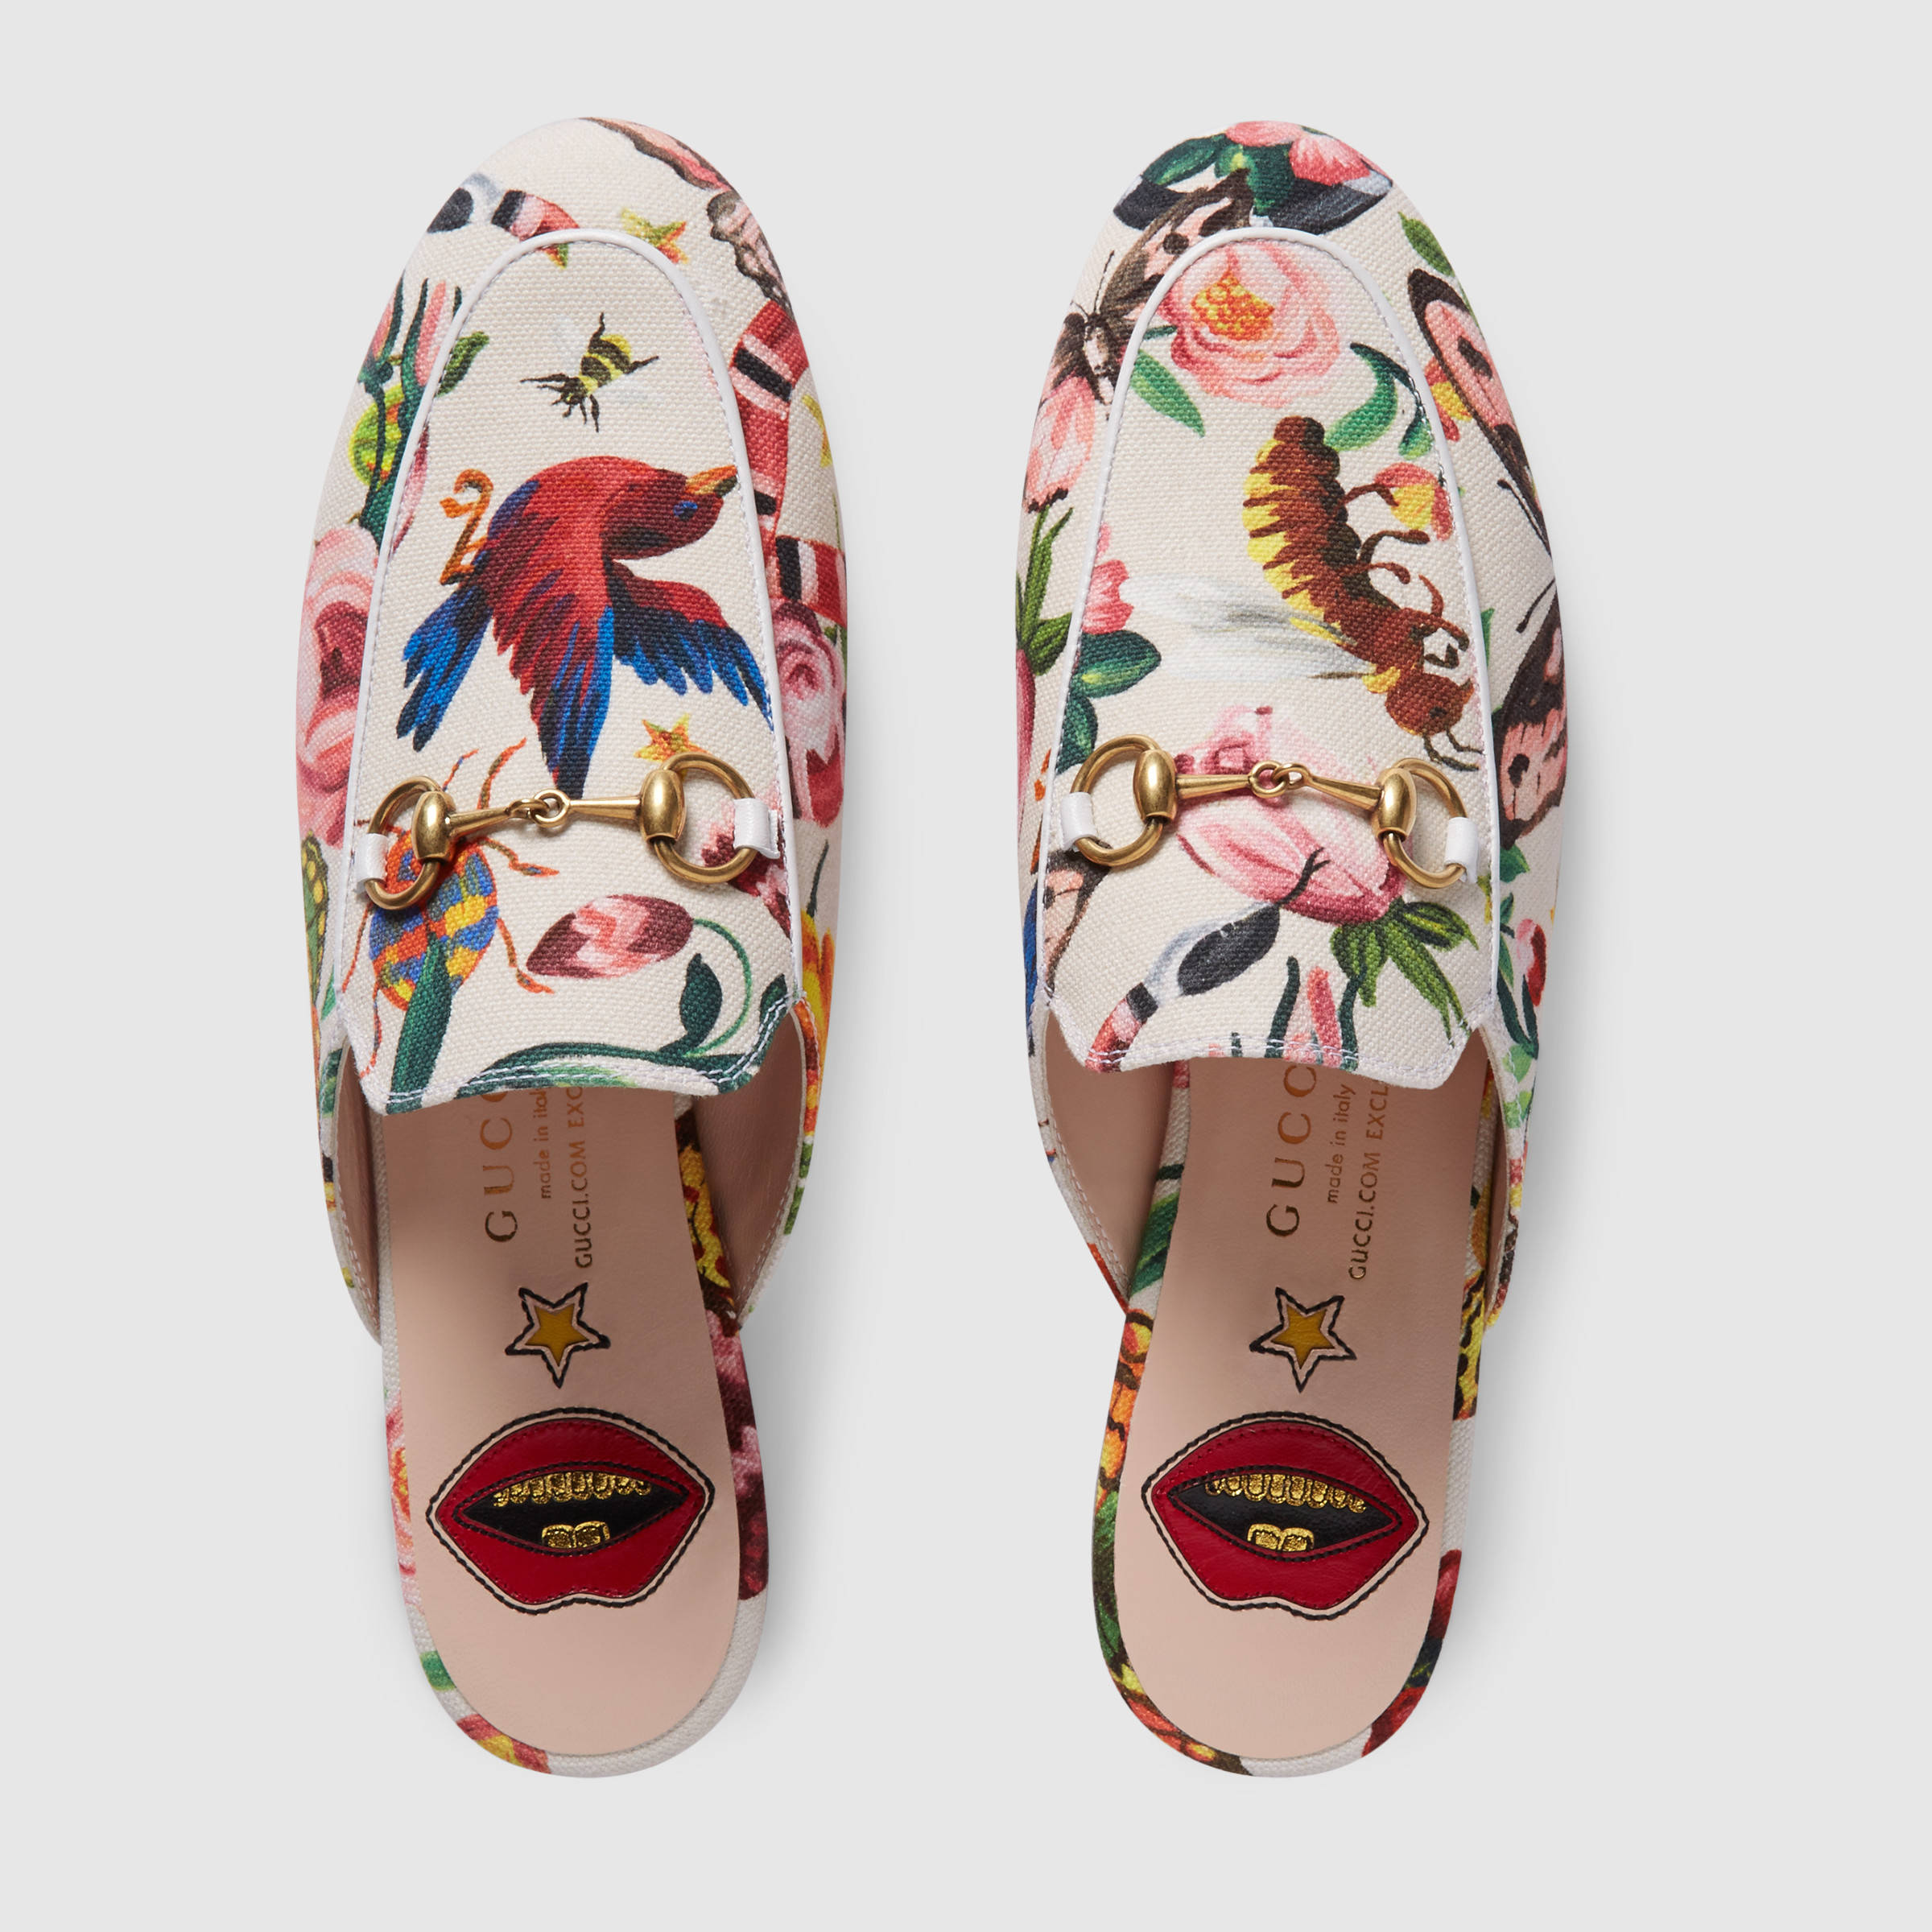 gucci-garden-exclusive-princetown-slipper-695